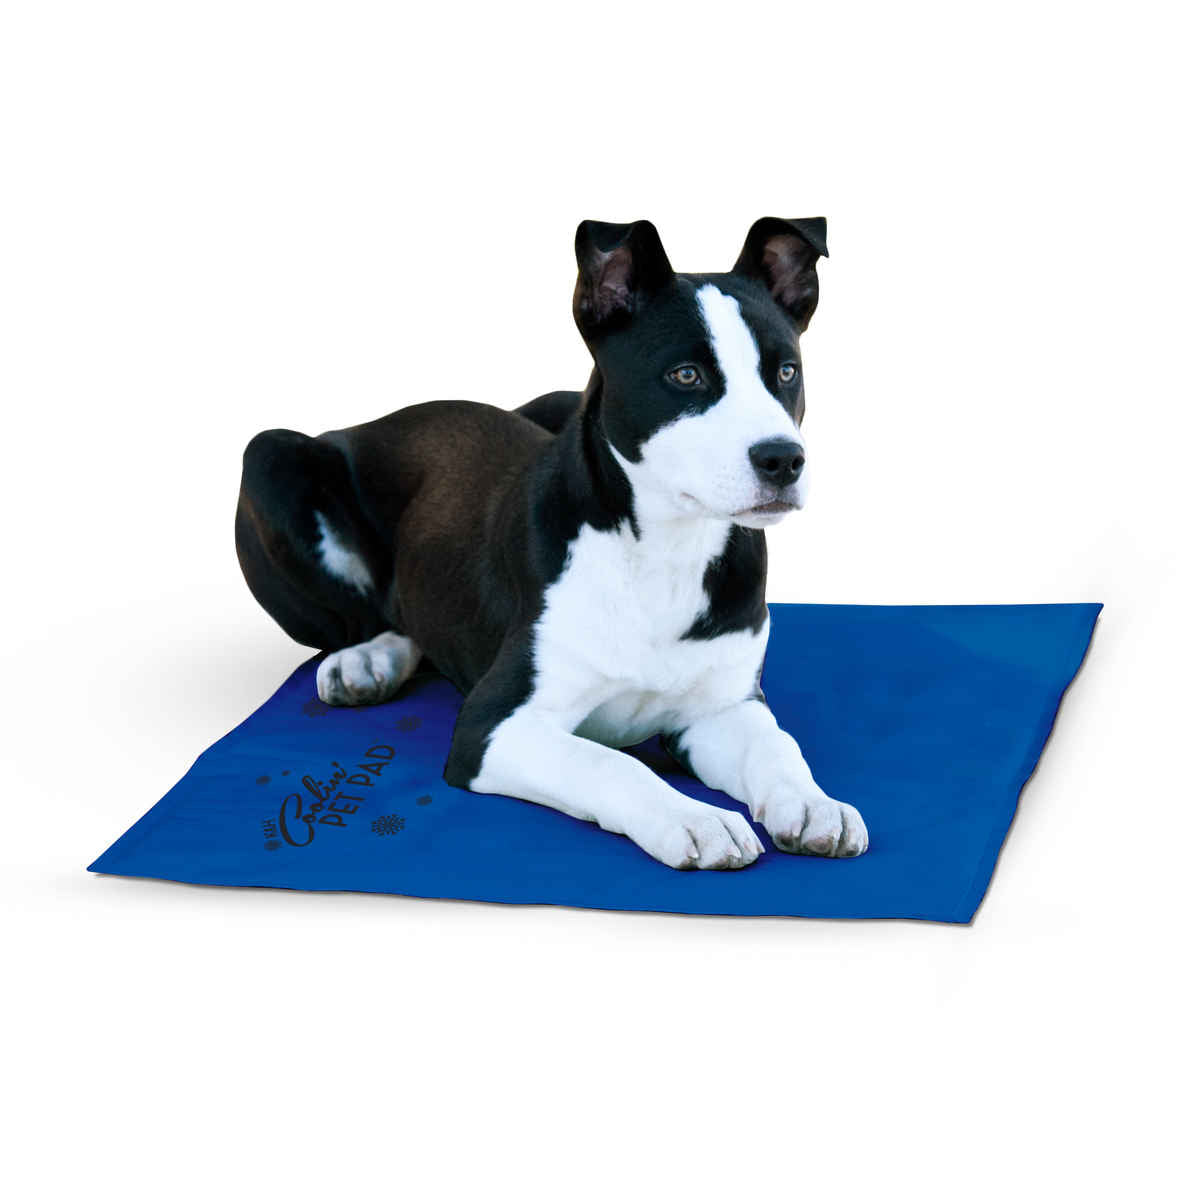 "K&H Pet Products Coolin Pet Pad Large Blue 20"" x 36"" x 0.75"""